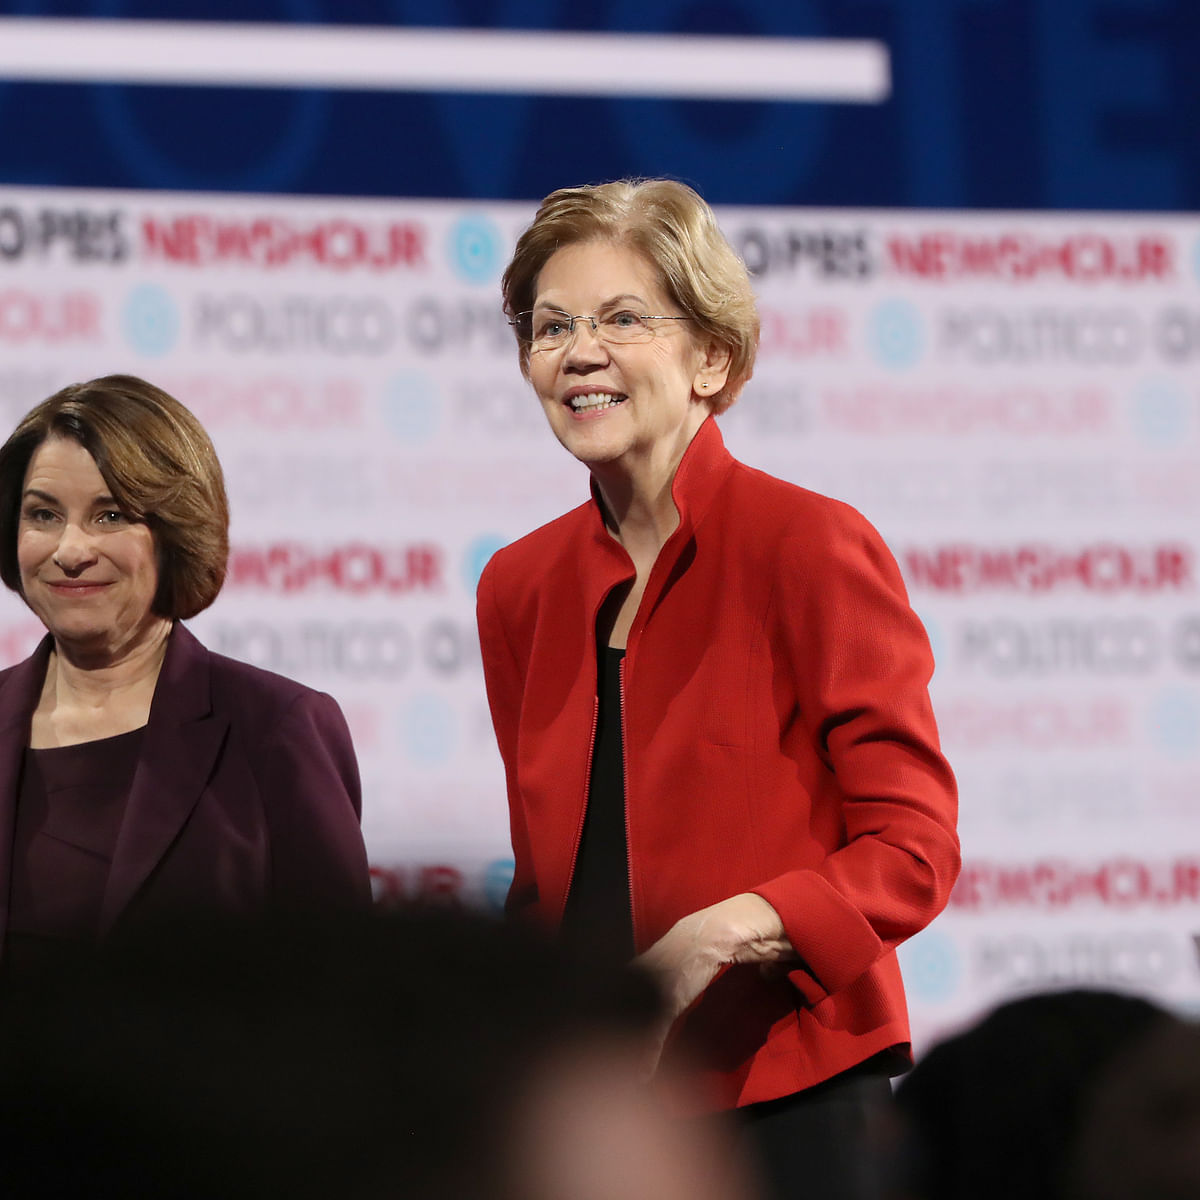 US 2020: Democratic hopeful Elizabeth Warren drops out after Tuesday rout